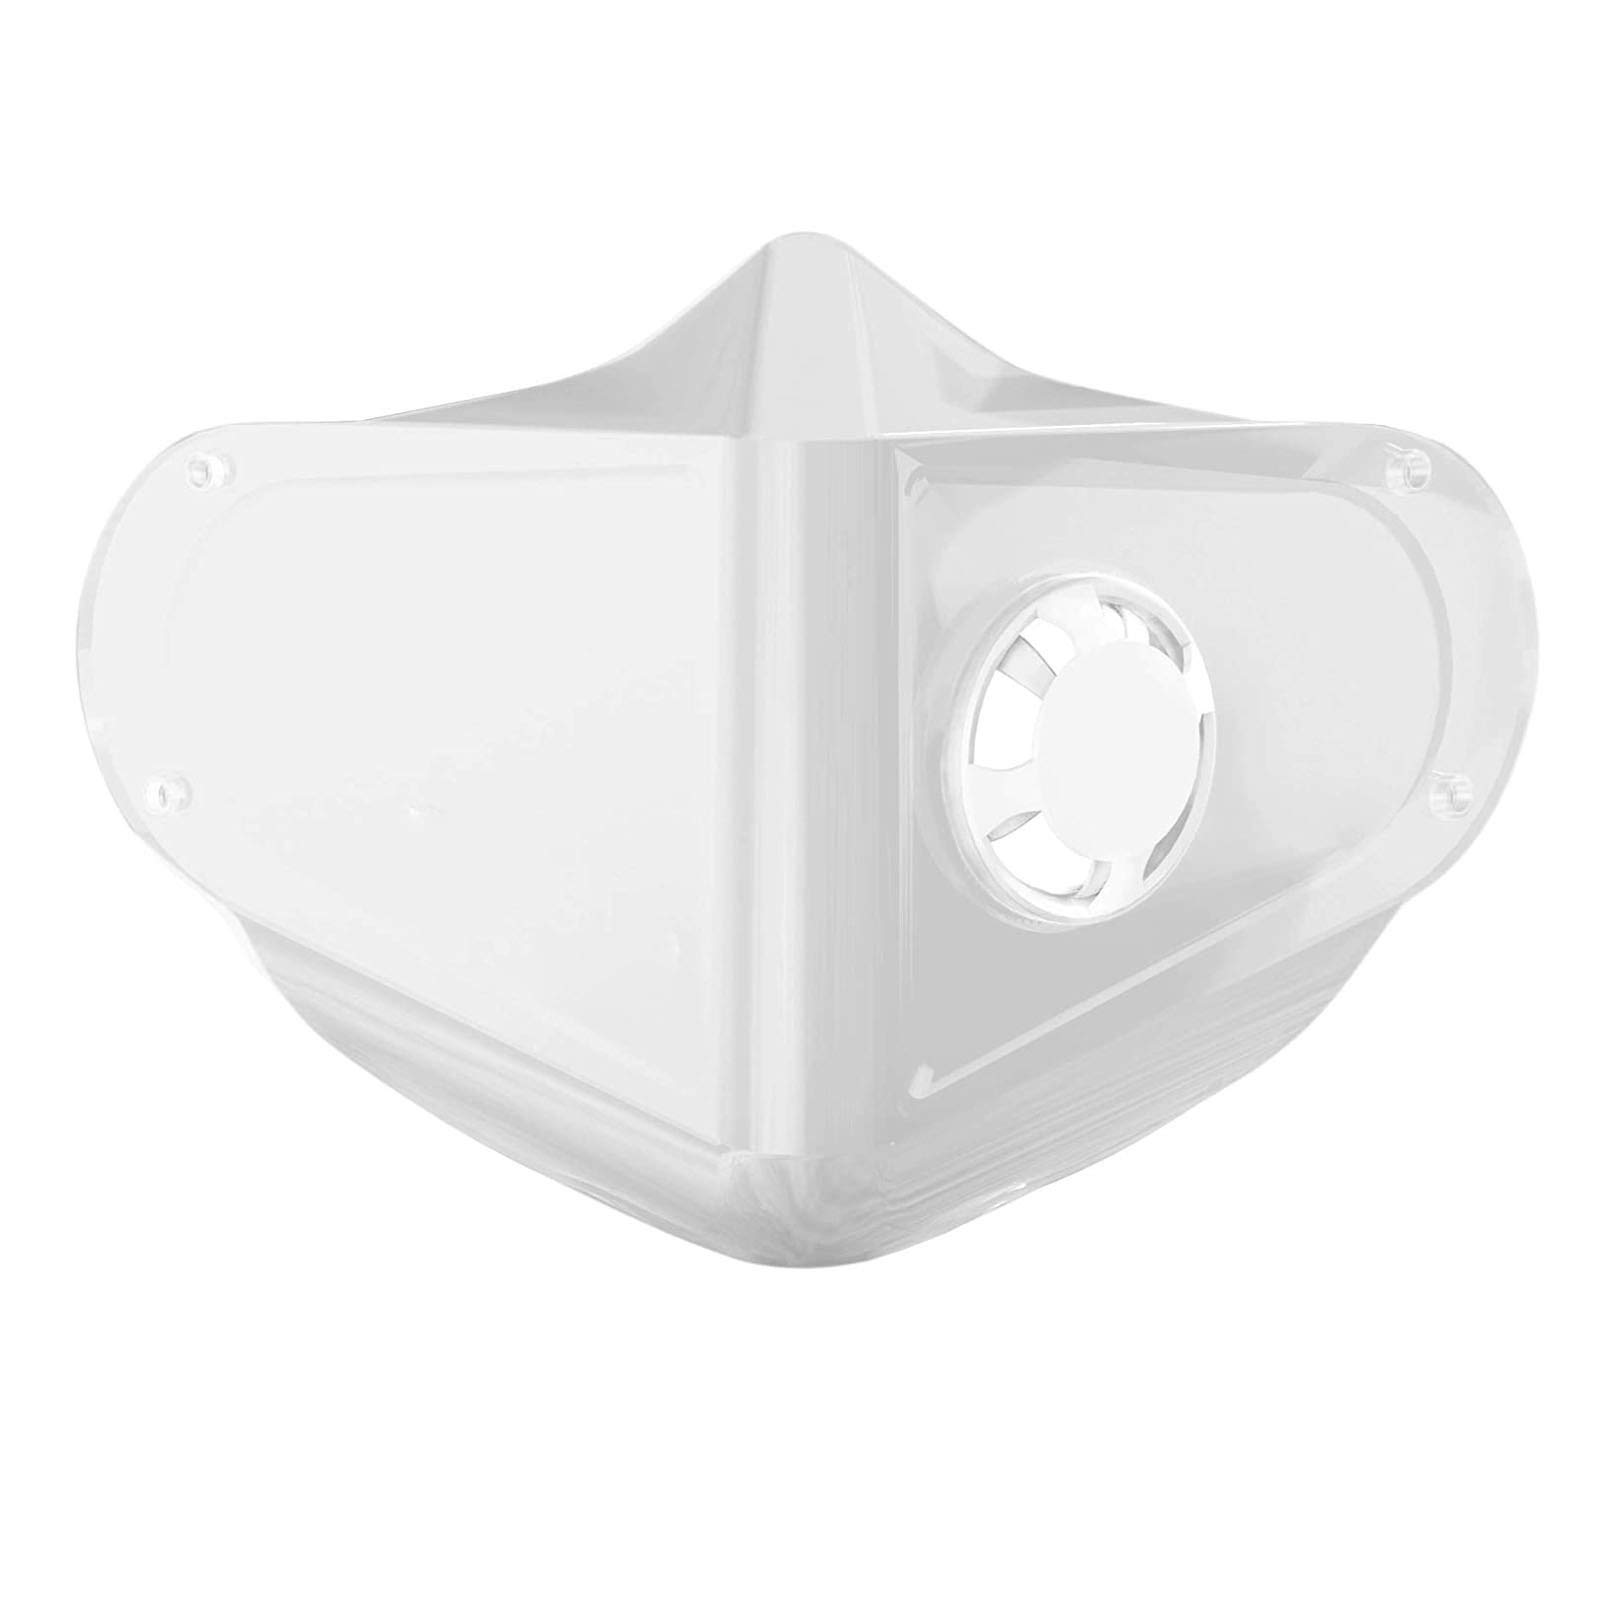 New PC protective Party mask with breathing valve, unisex anti-fogging head-wear adult high permeability - KingCare | KingCare.net